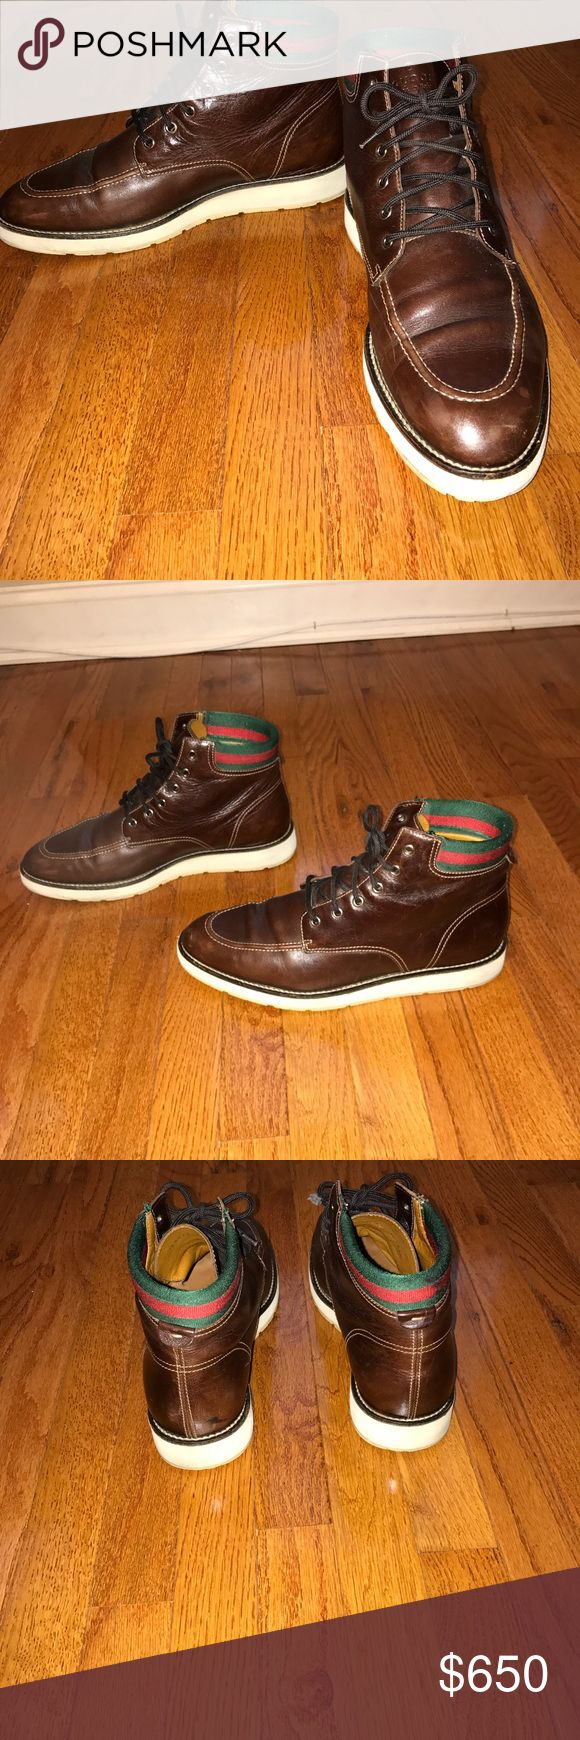 Gucci boots men🔥🔥🔥 Gucci boots SZ 11 1/2, great condition, make me a offer?😊 Gucci Shoes Boots